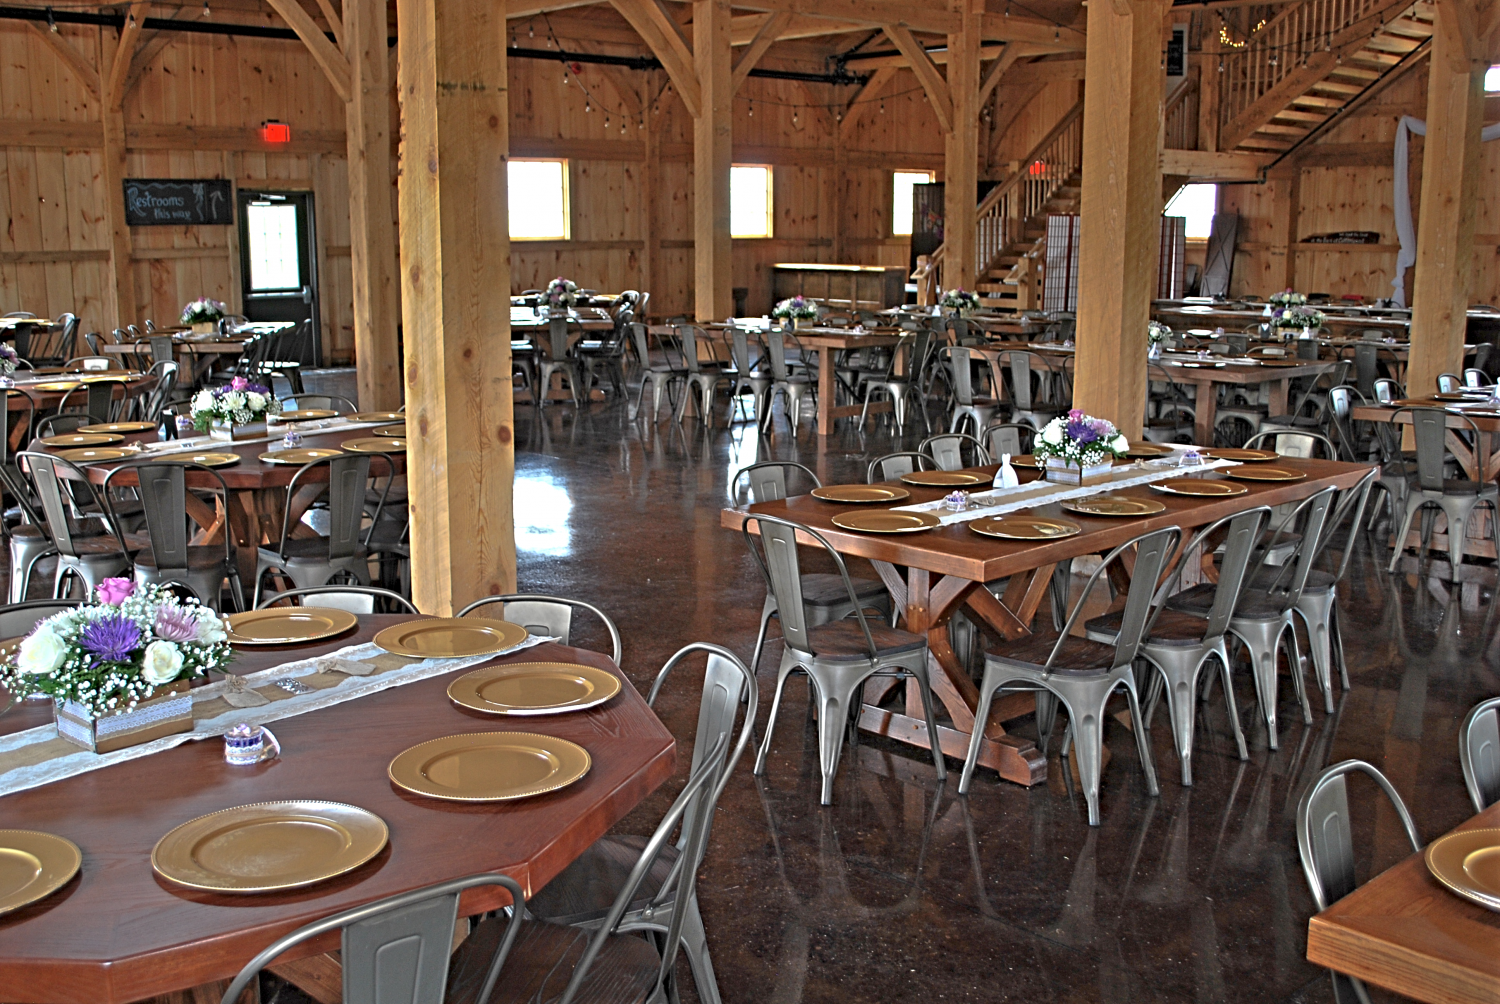 Barn Weddings and Events Venue   Chicago   The Barn at ...